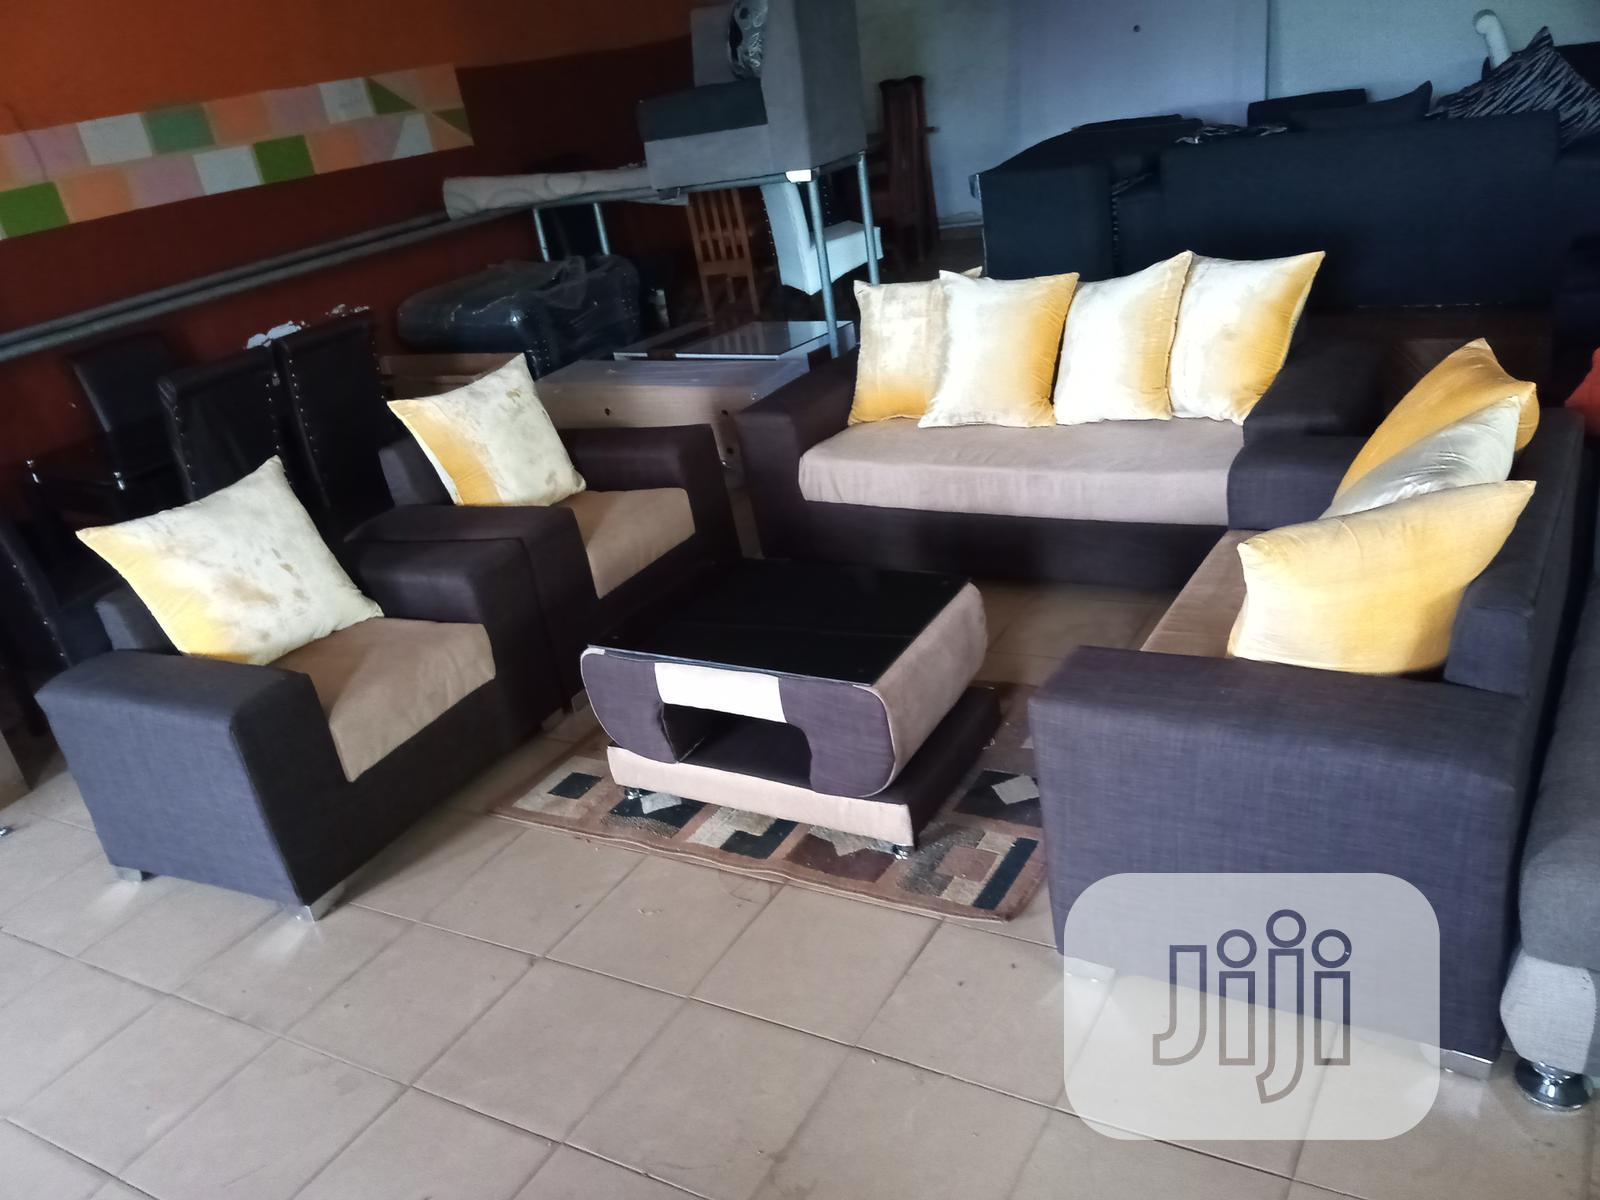 Set Of 7 Seaters Sofa Chairs With Table - Fabric Couch